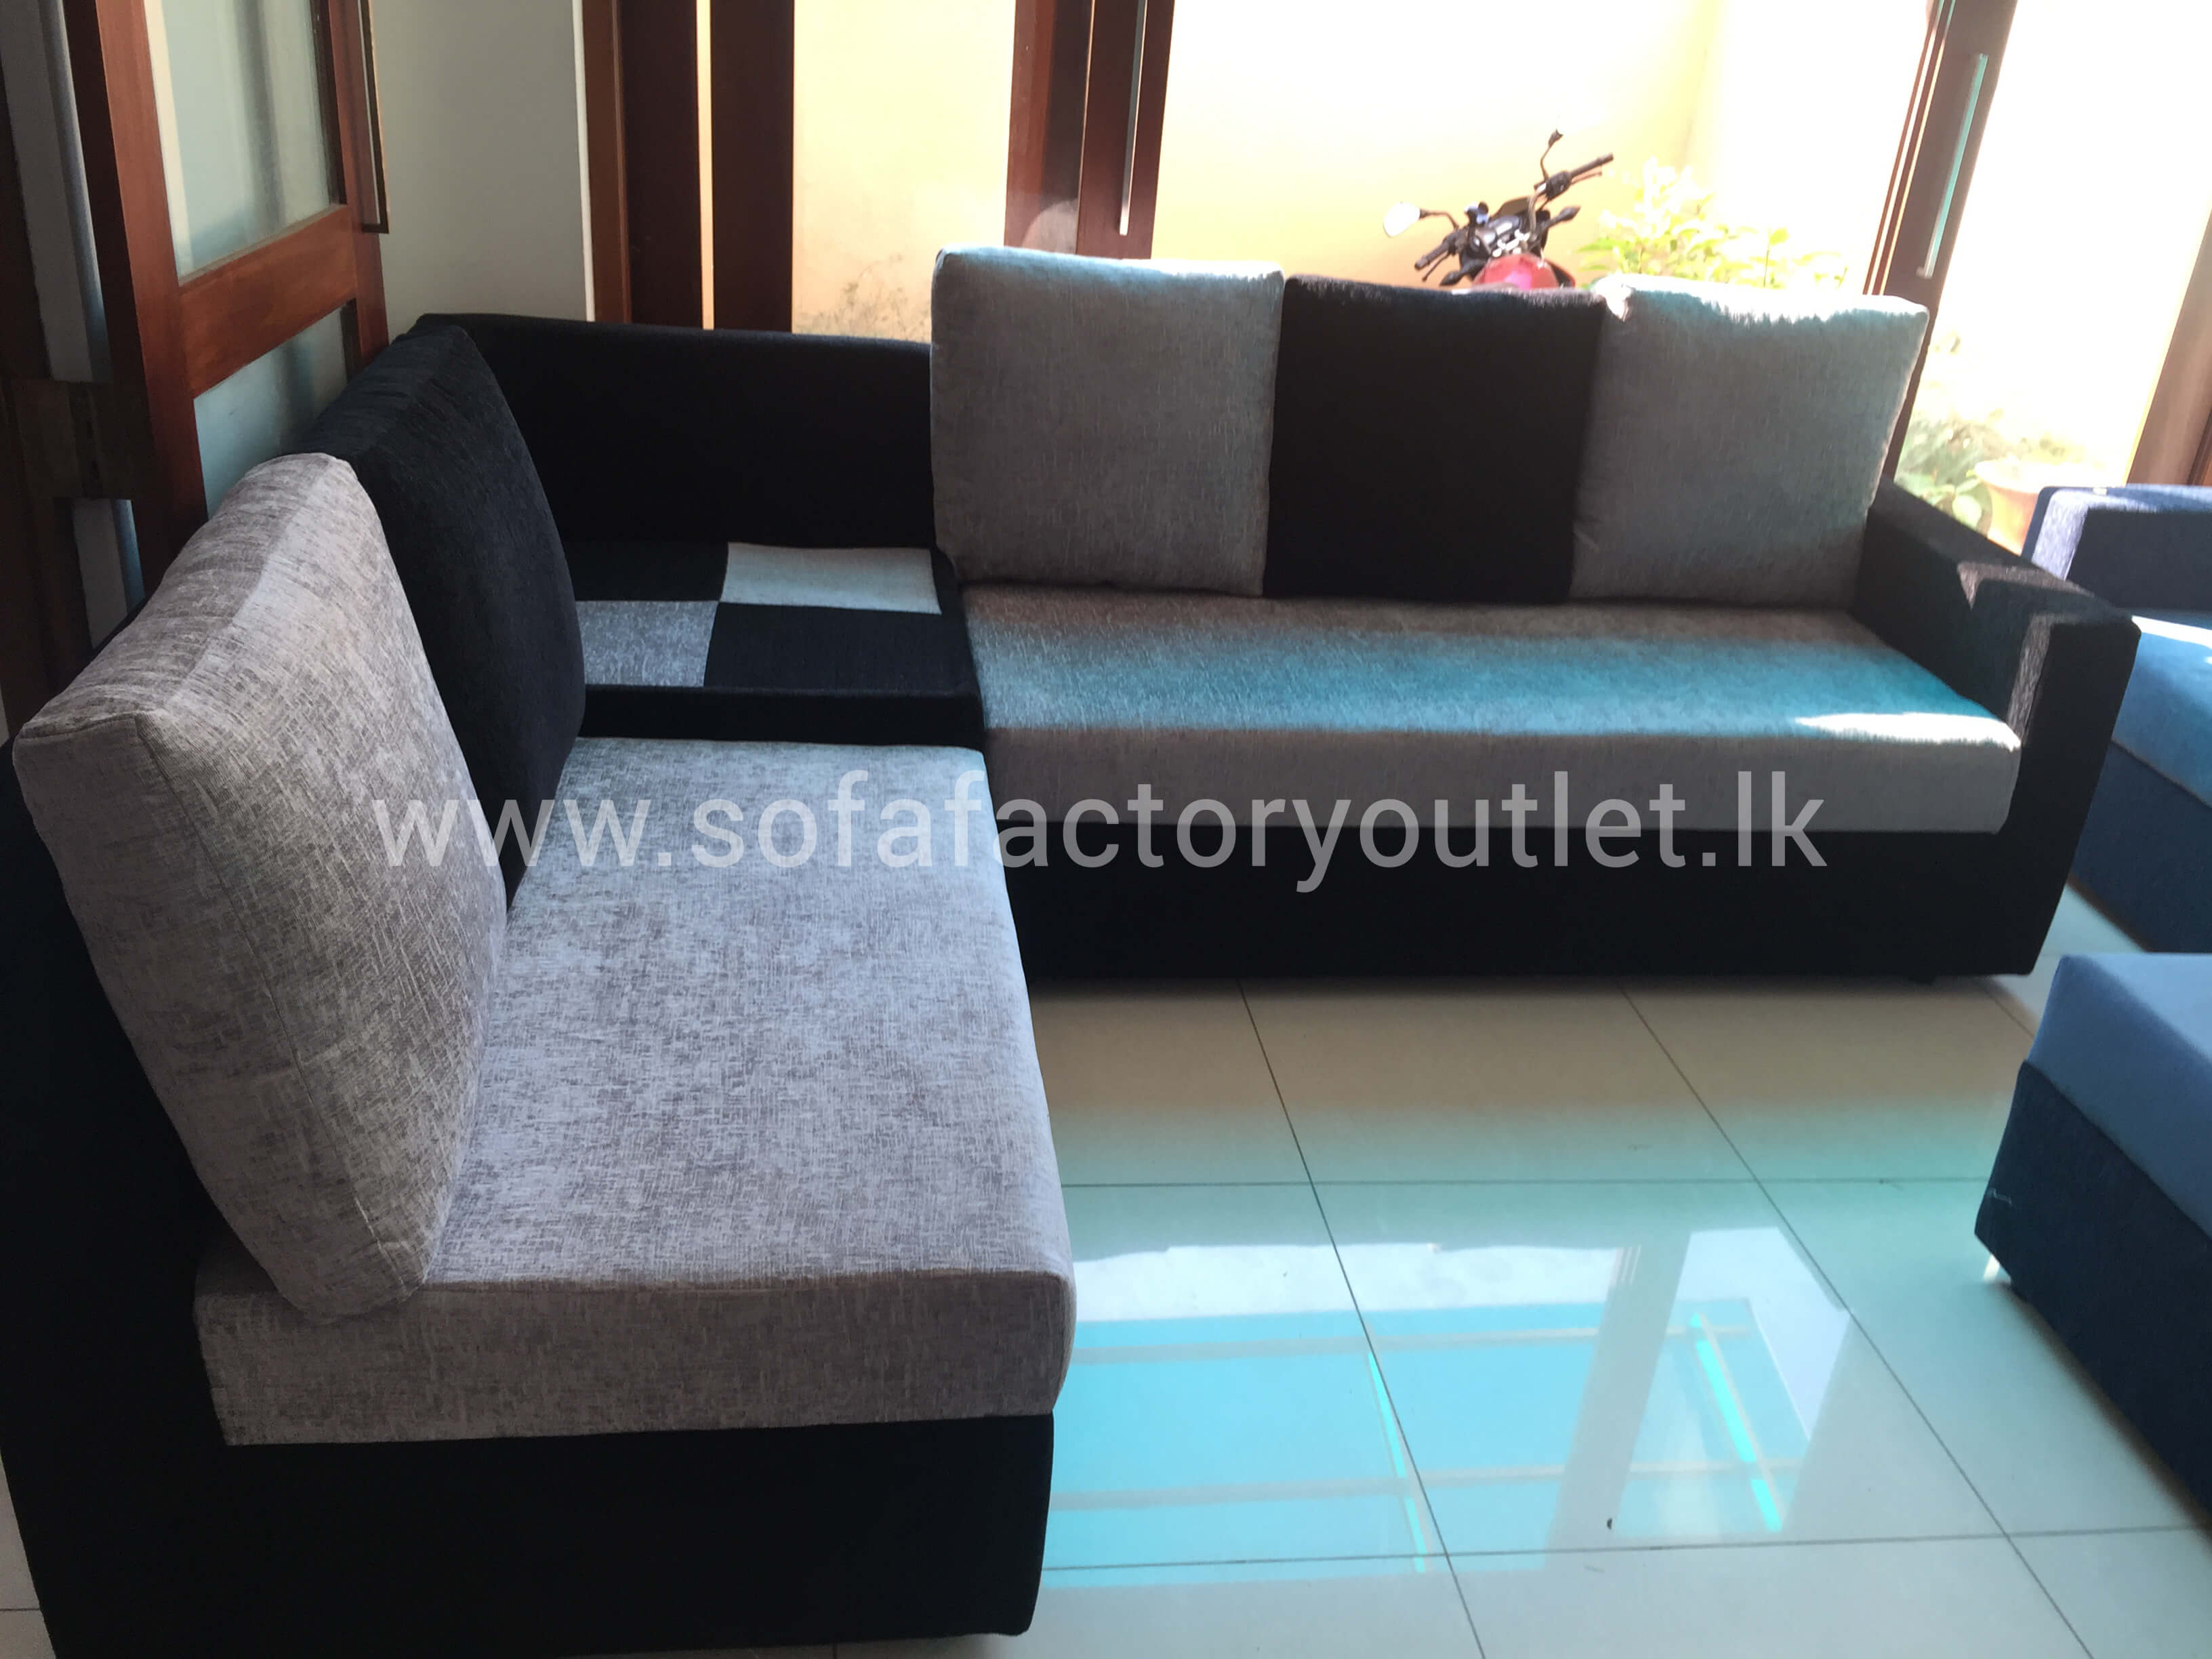 Sofa Factory Outlet | Sofa Sri Lanka | No 1 Furniture Store In Sri Lanka | Customized For Your Comfort